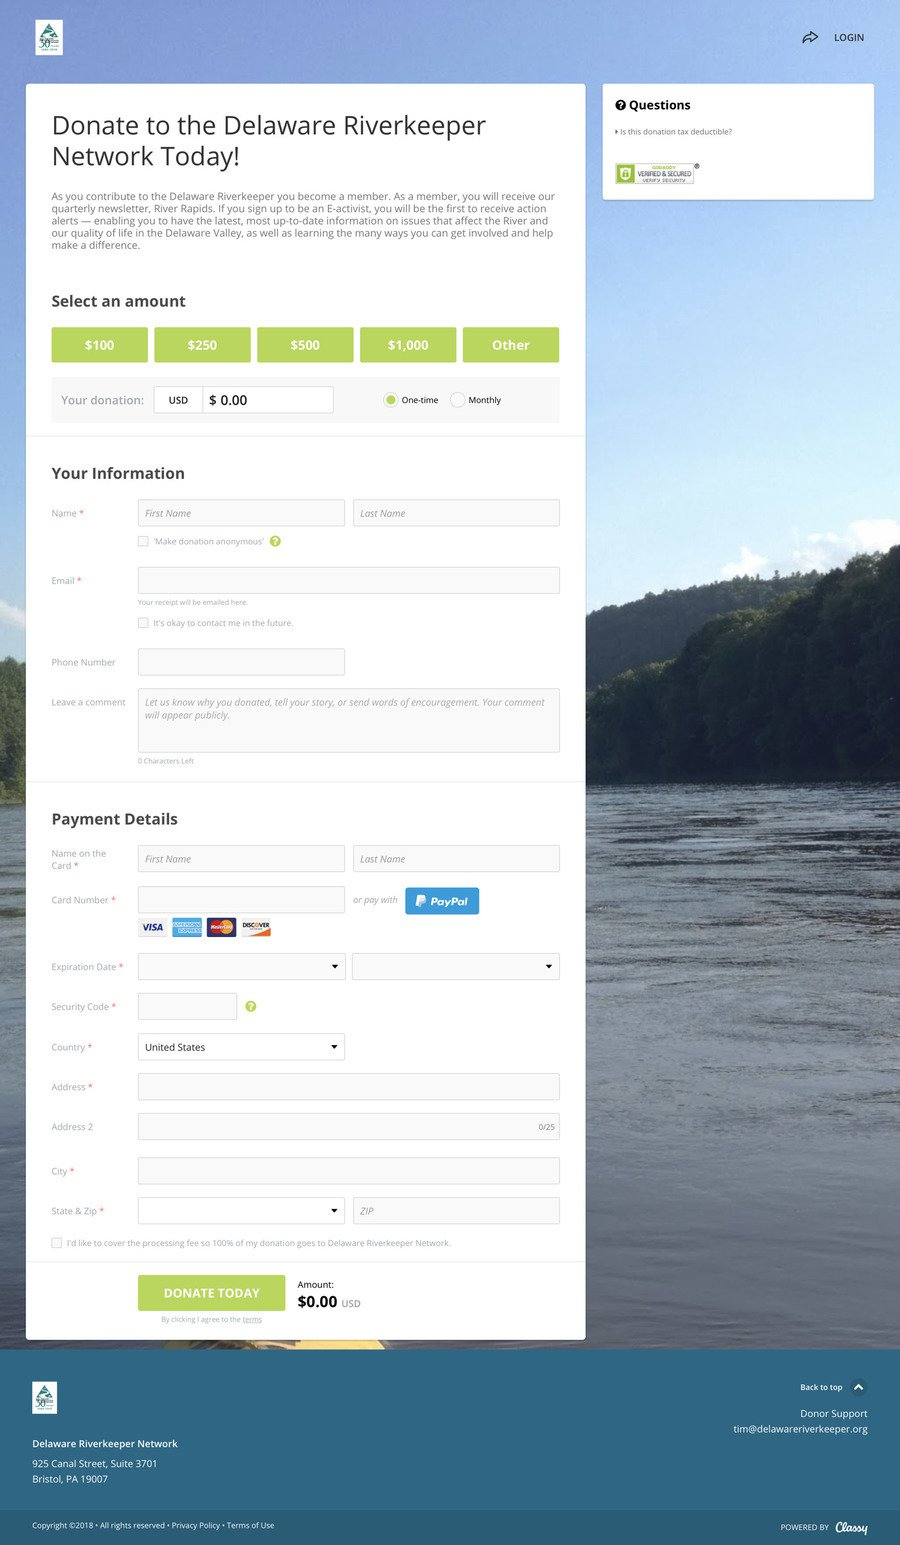 Donate to the Delaware Riverkeeper Network Today! , a Donation campaign on Classy.org